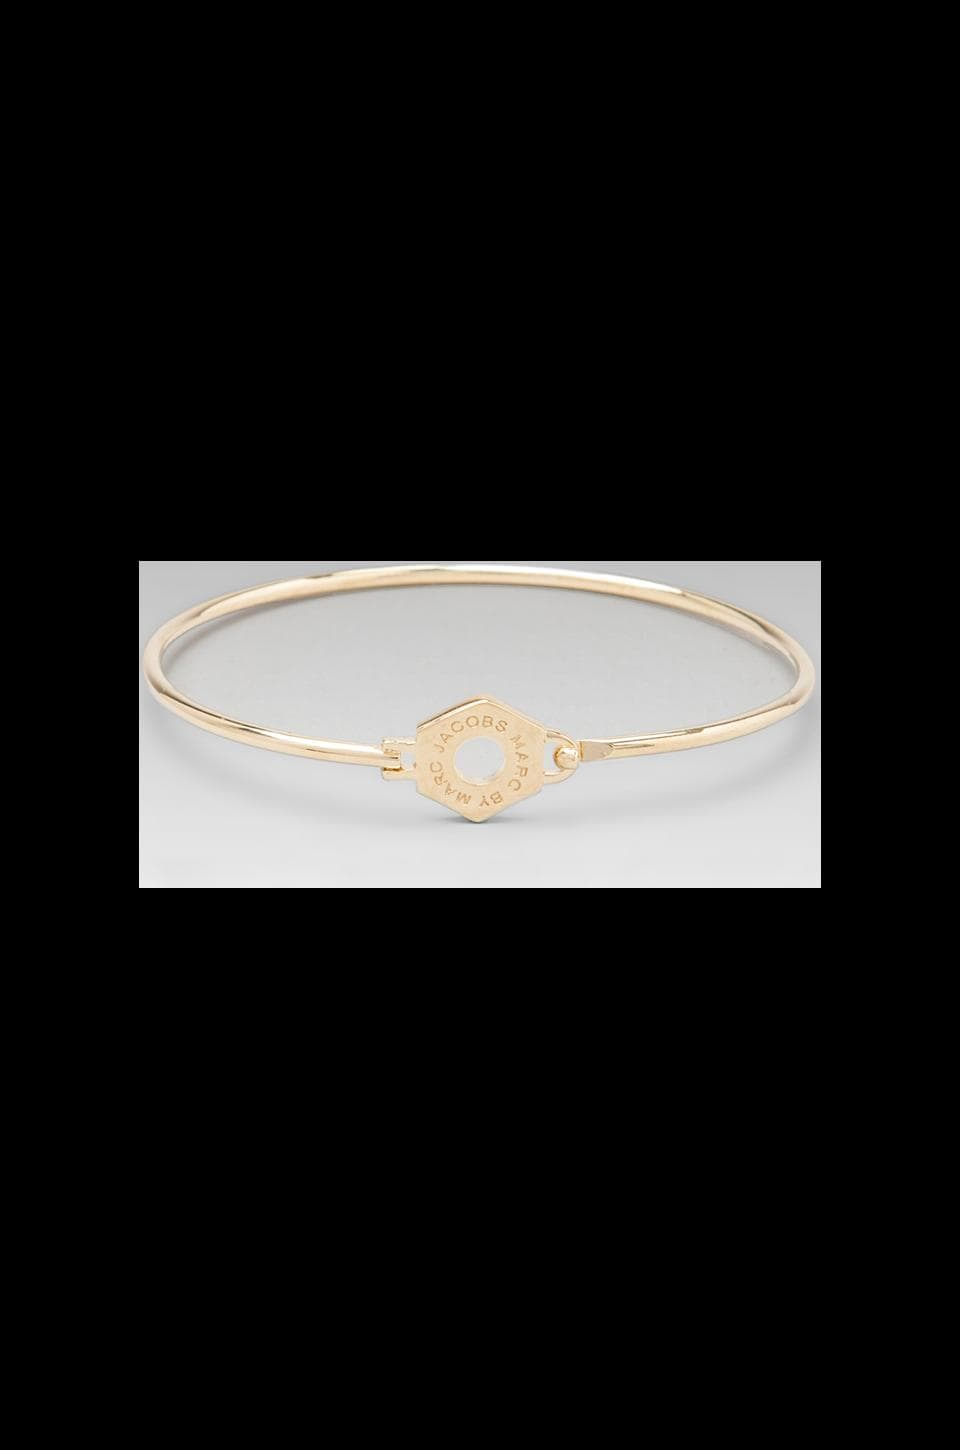 Marc by Marc Jacobs Skinny Bolt Bracelet in Oro